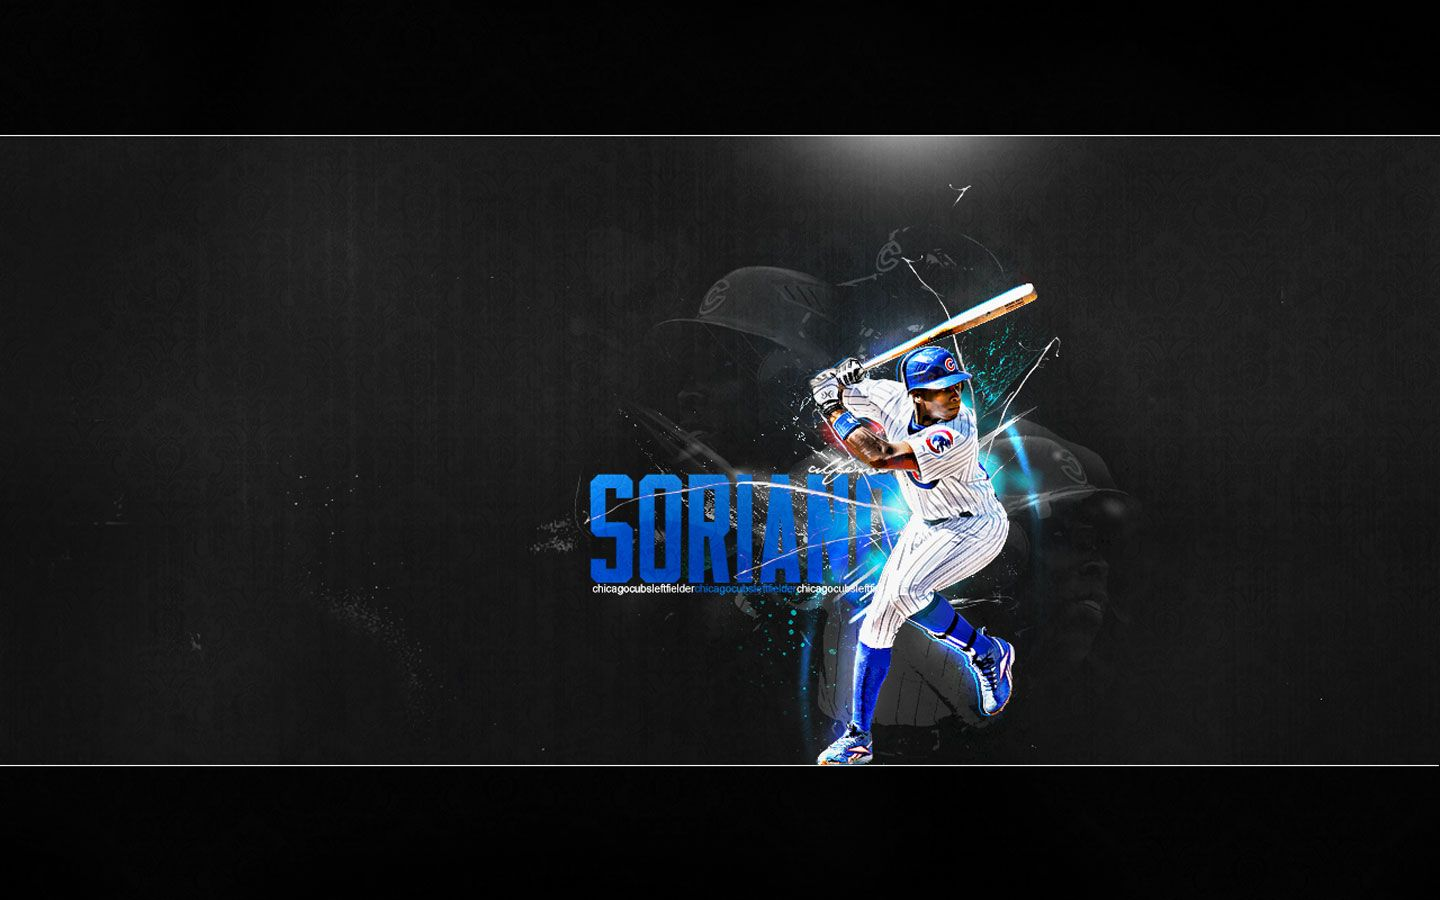 Free Download Major League Baseball Wallpapers 1440x900 For Your